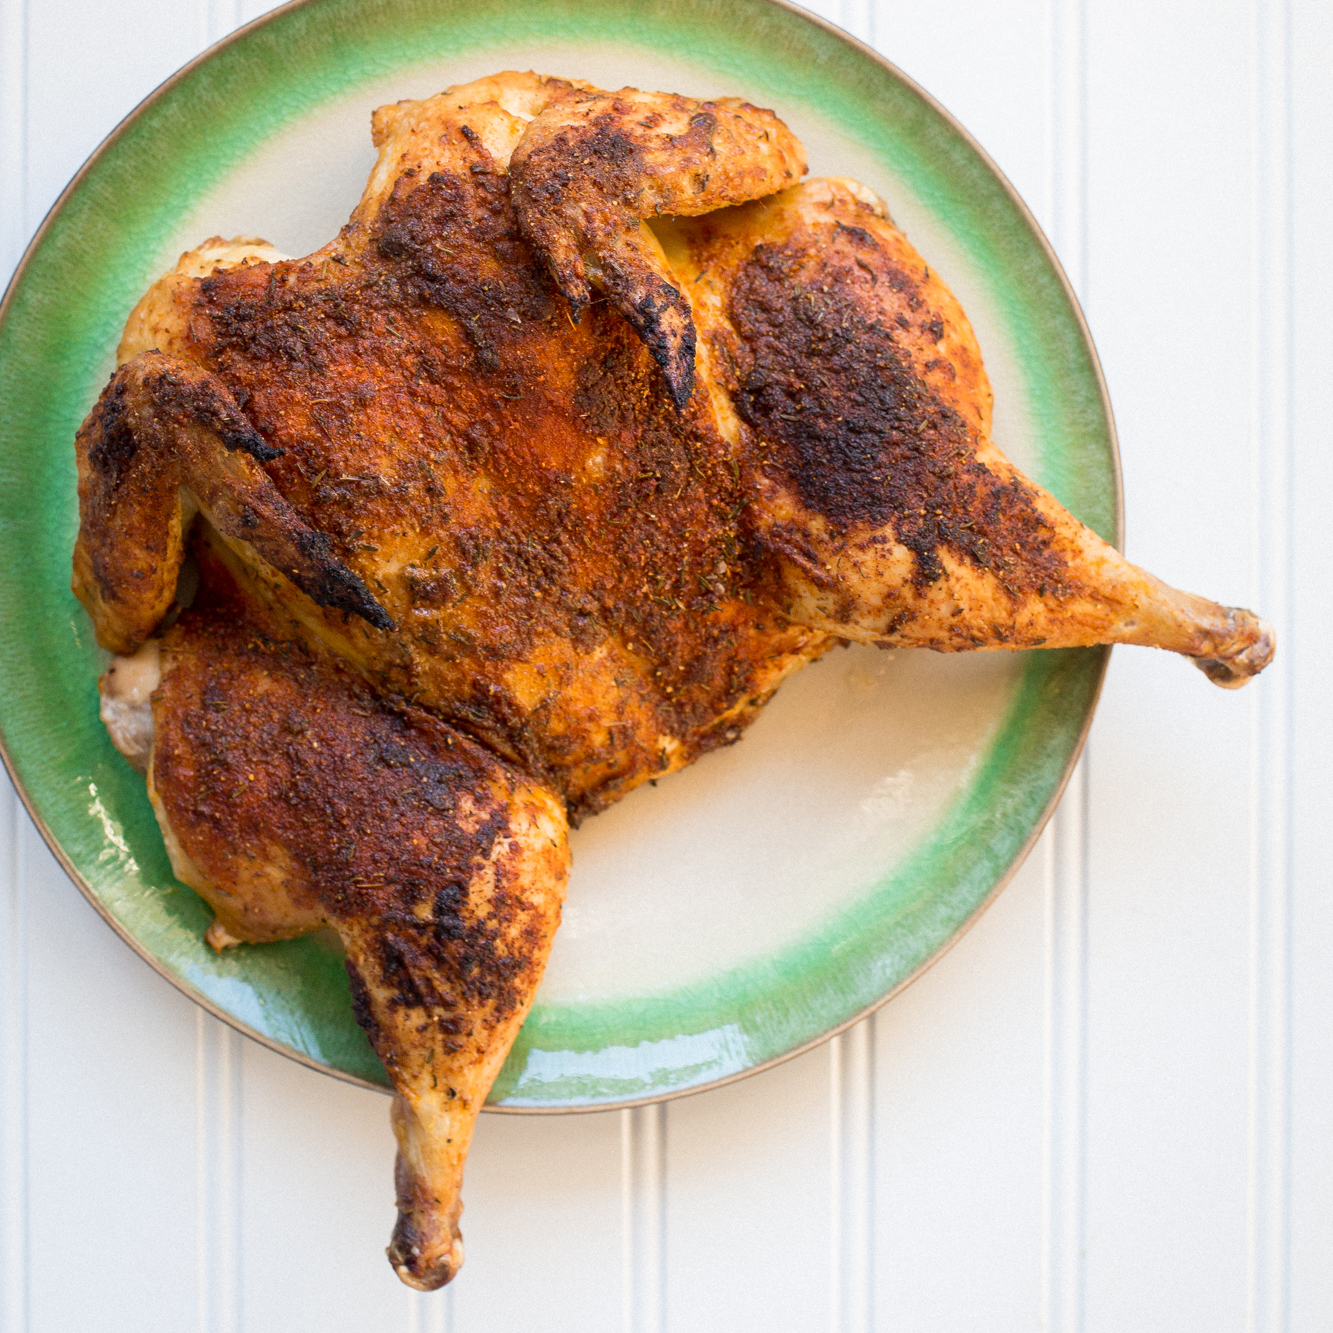 201501-r-seven-spice-roasted-chicken.jpg